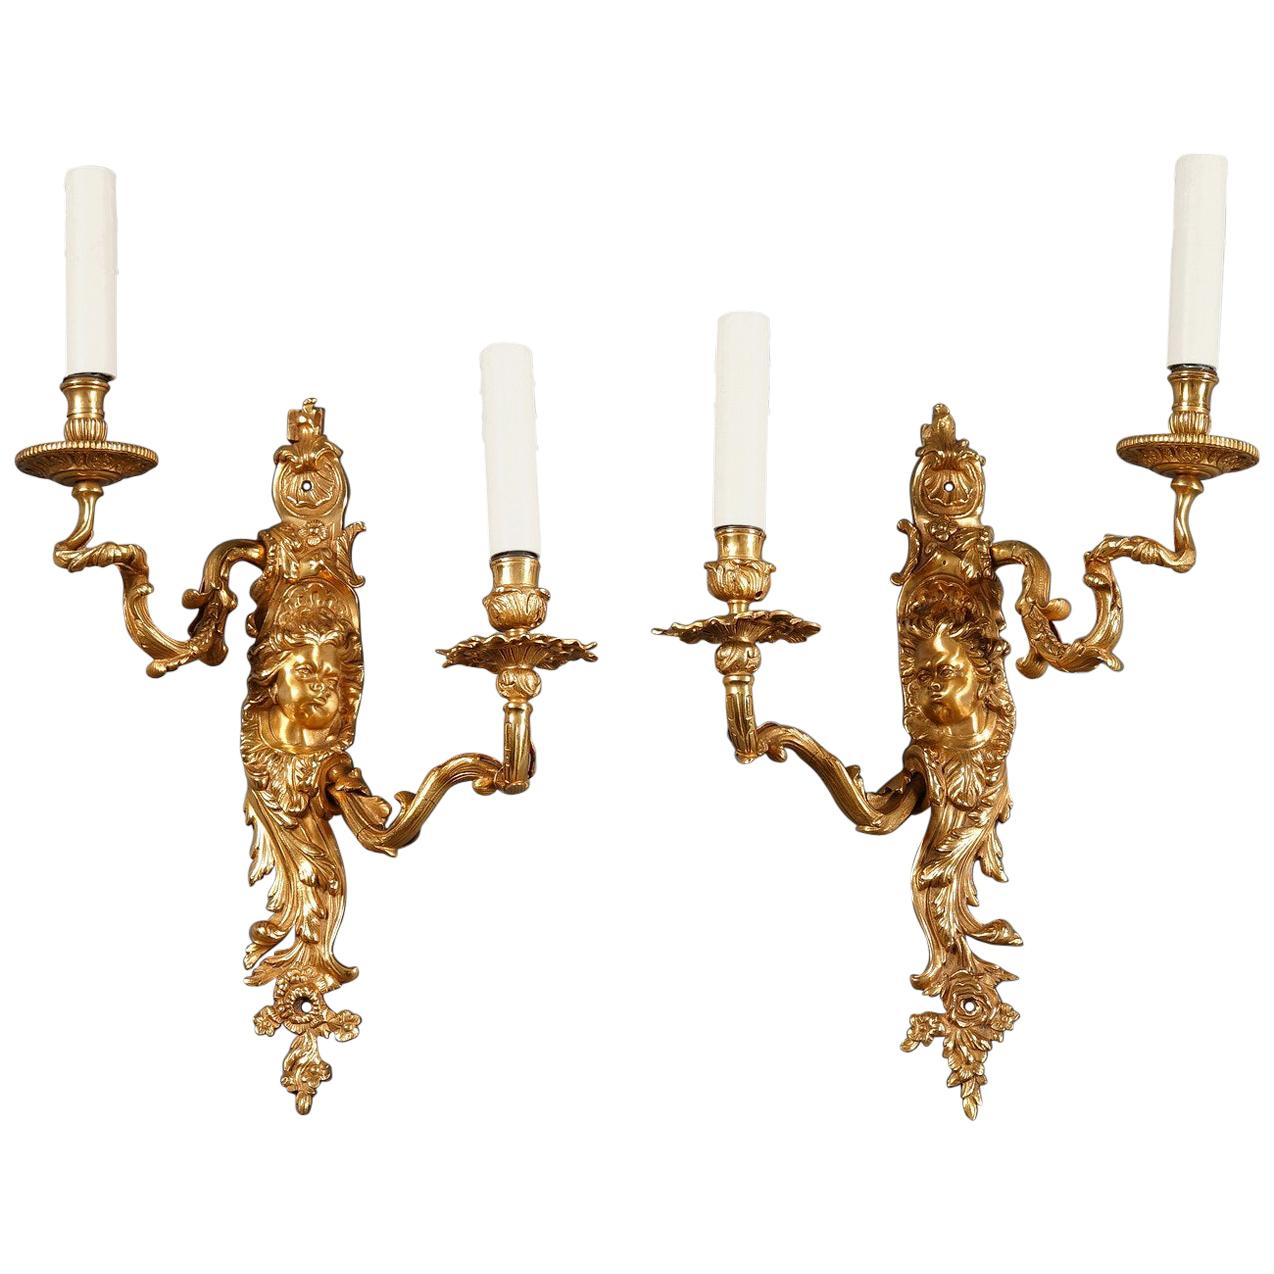 Late 19th Century Ormolu Sconces in Louis XV Style